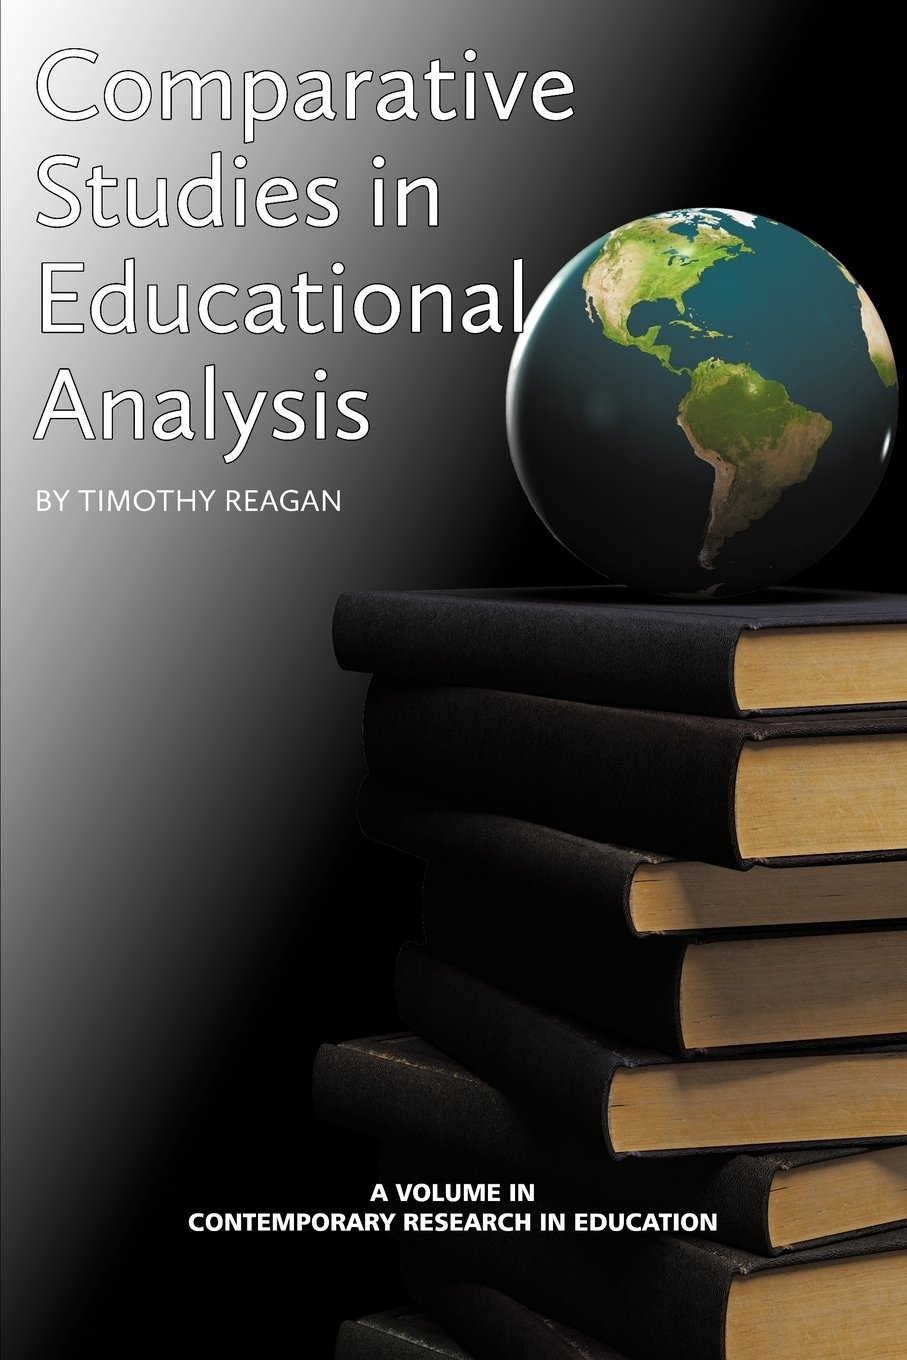 Download Comparative Studies in Educational Policy Analysis (Contemporary Research in Education) ebook